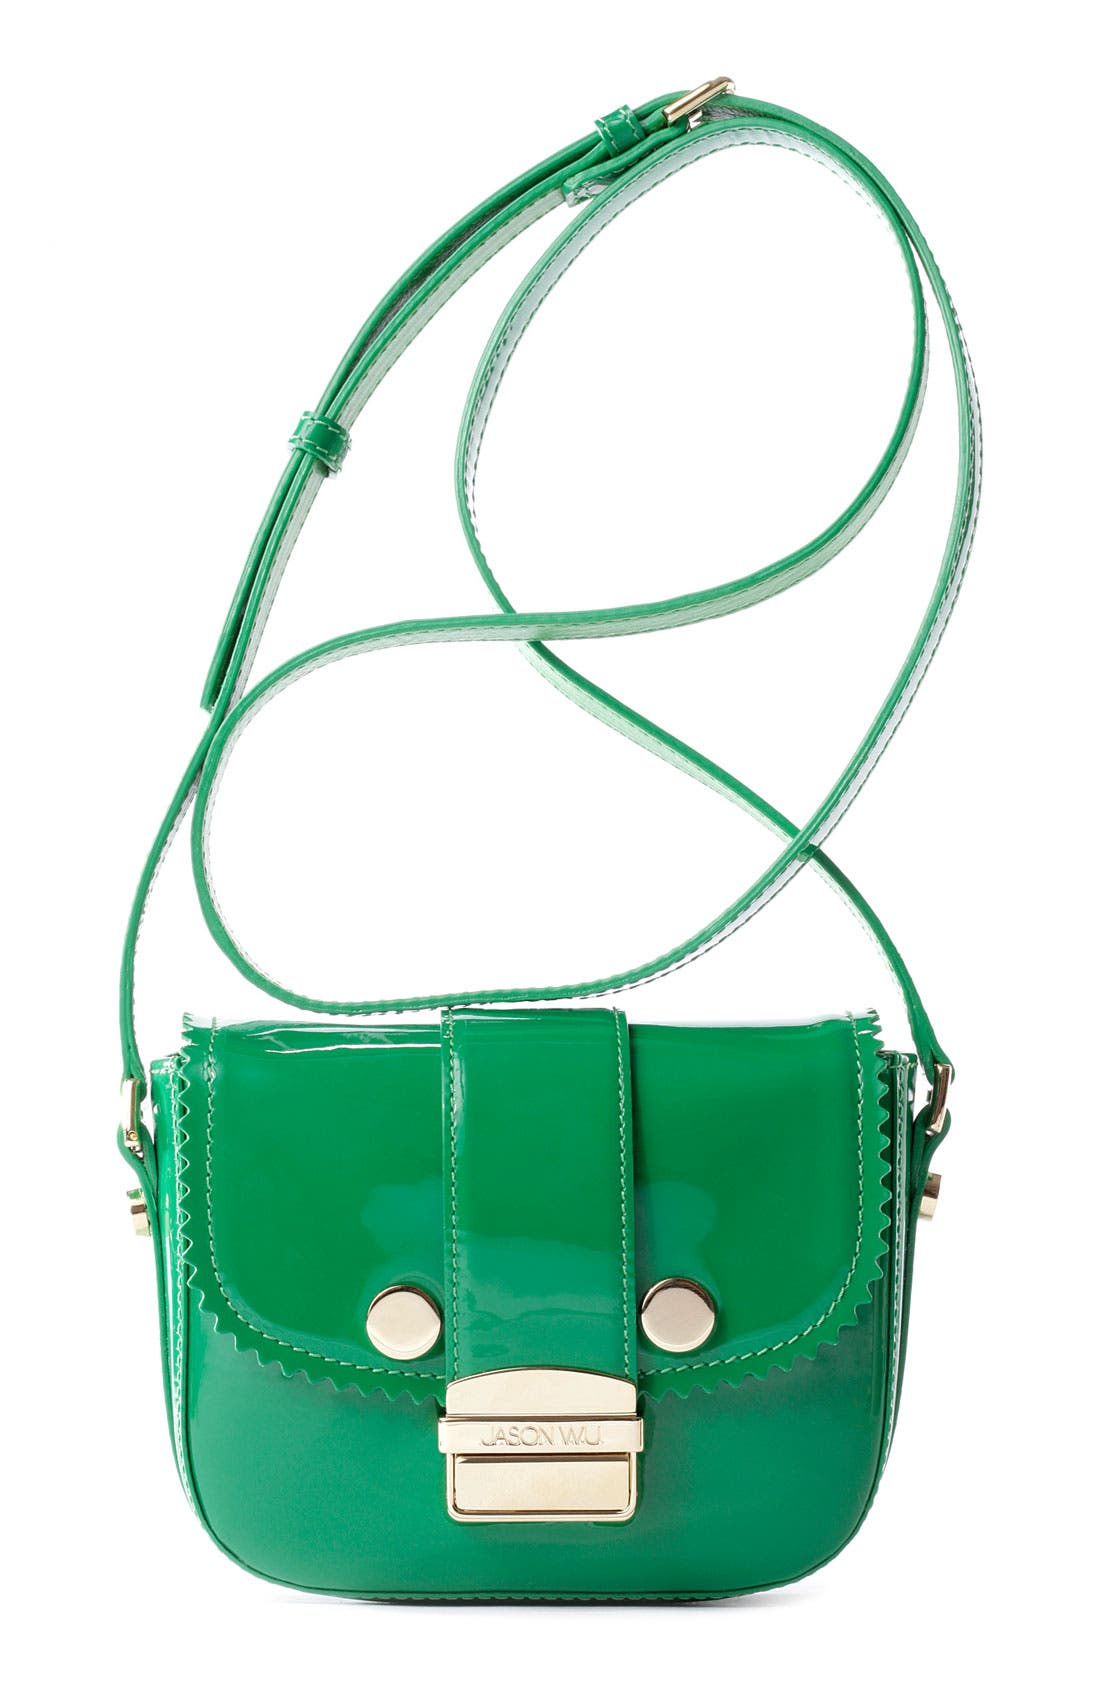 Main Image - Jason Wu 'Mini Miss Wu' Patent Leather Crossbody Bag